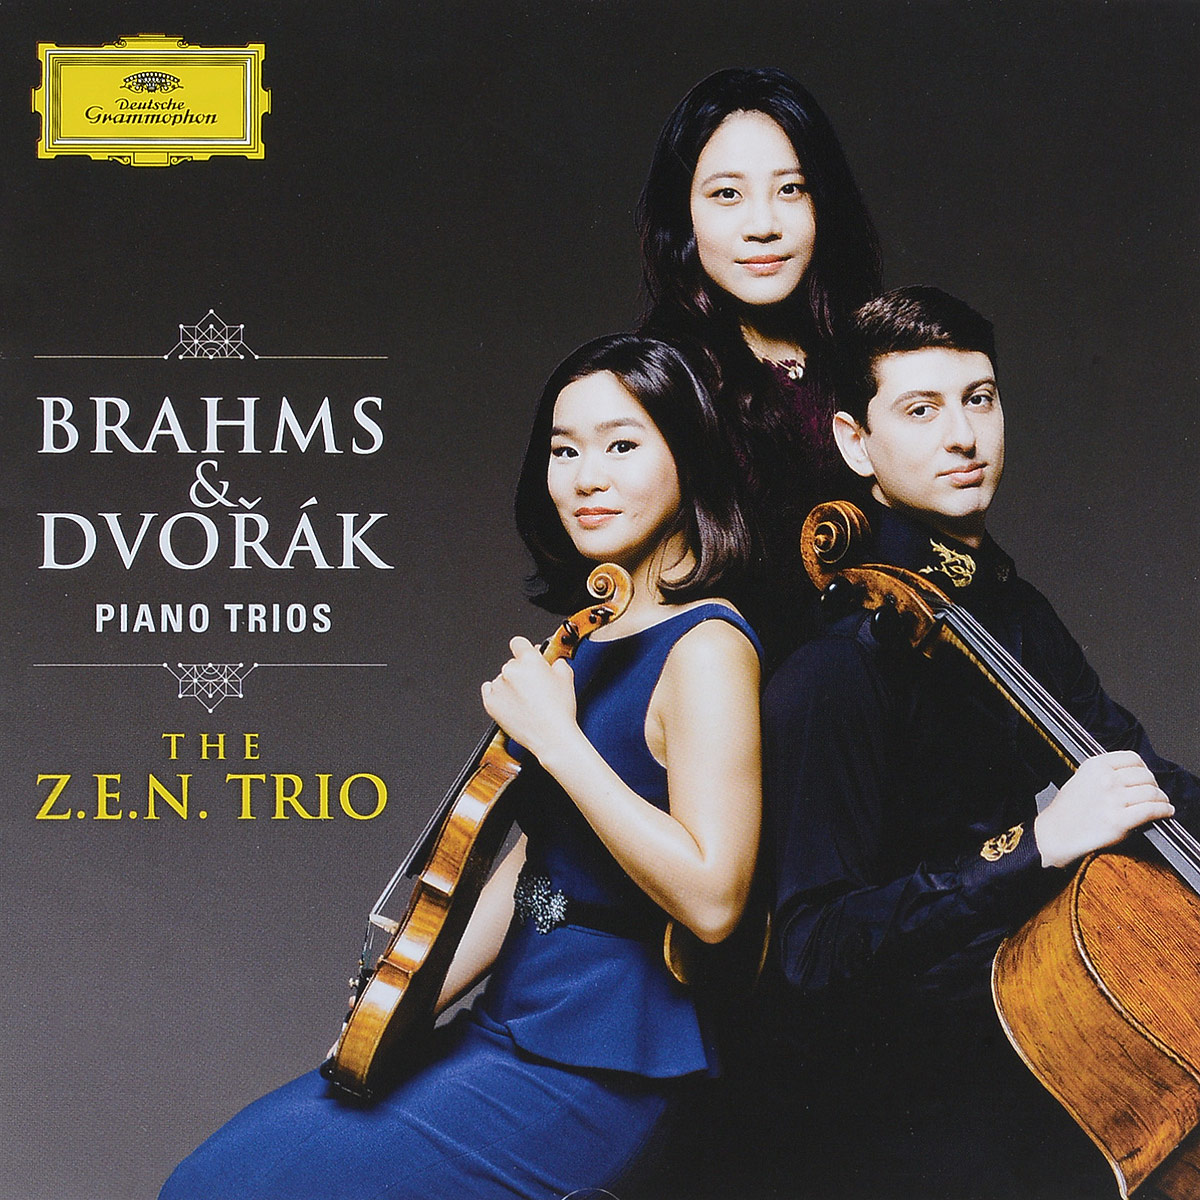 Z.E.N. Trio, The Brahms & Dvorak: Piano Trios